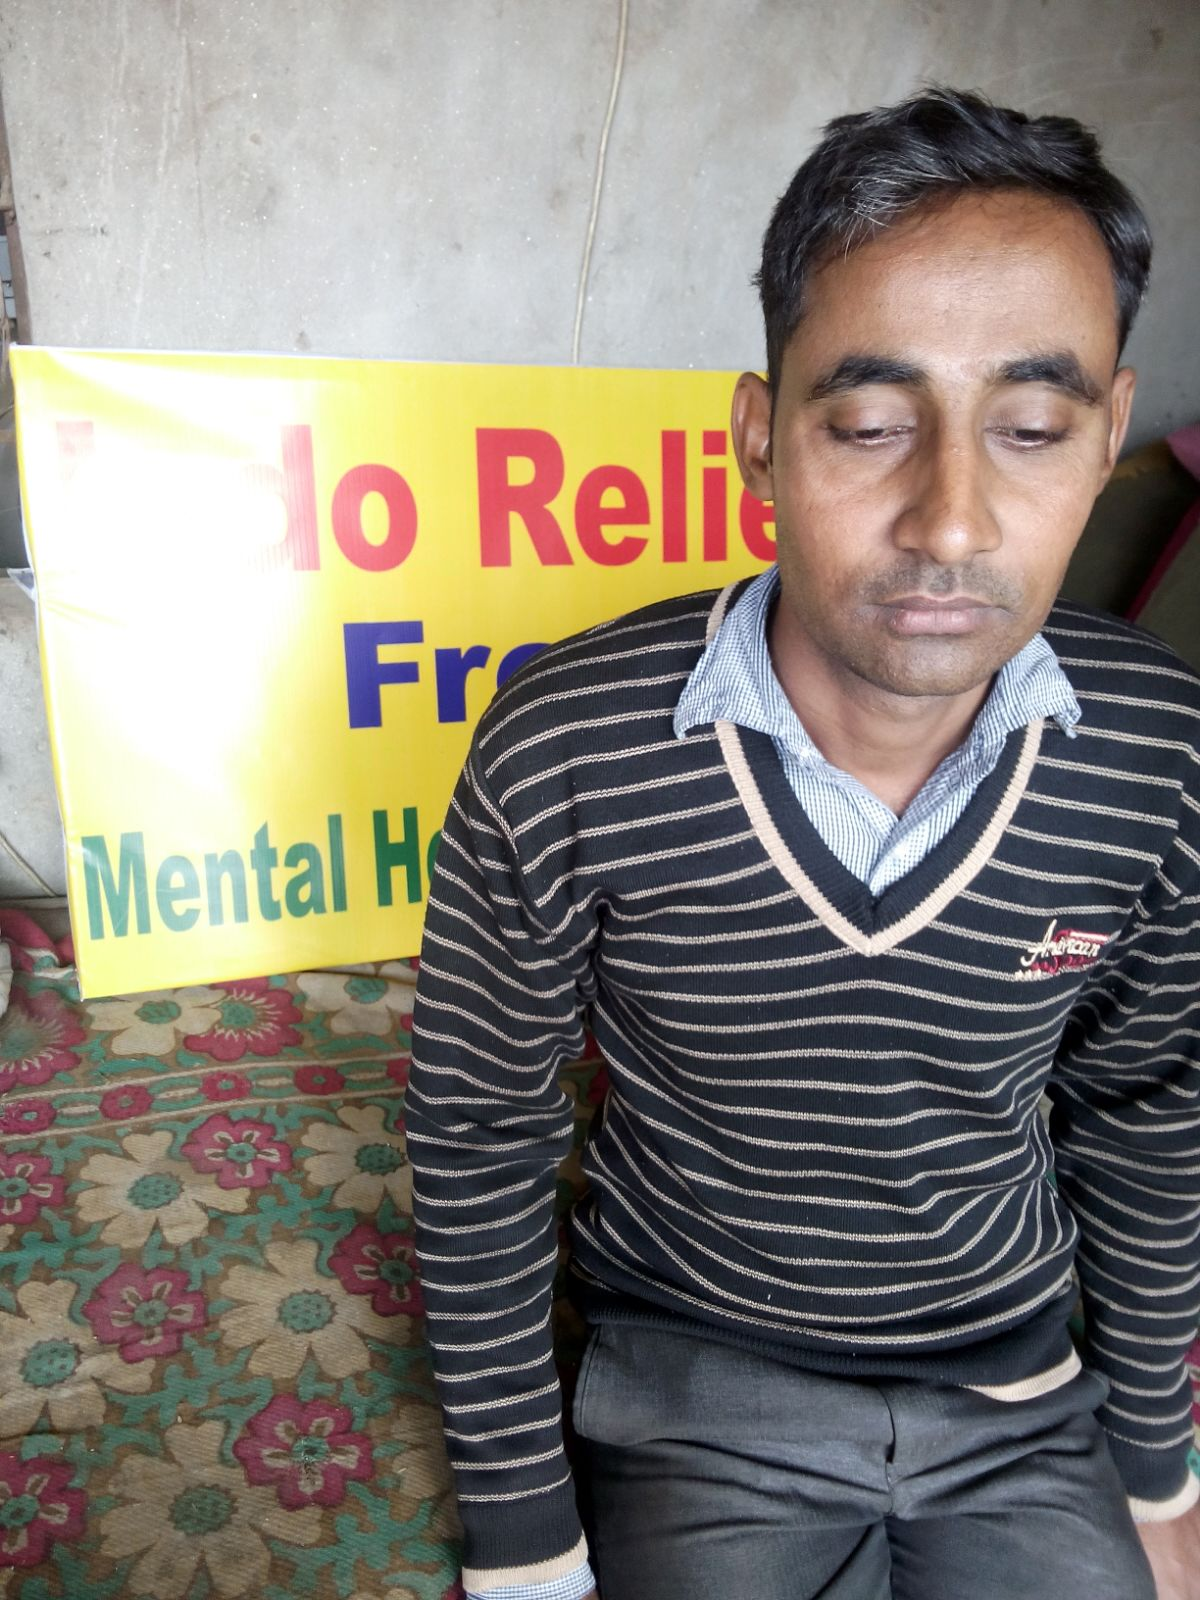 Meet Muhammad. He is 40 years old and suffers from depression. He tells us that he often thinks of hurting himself.